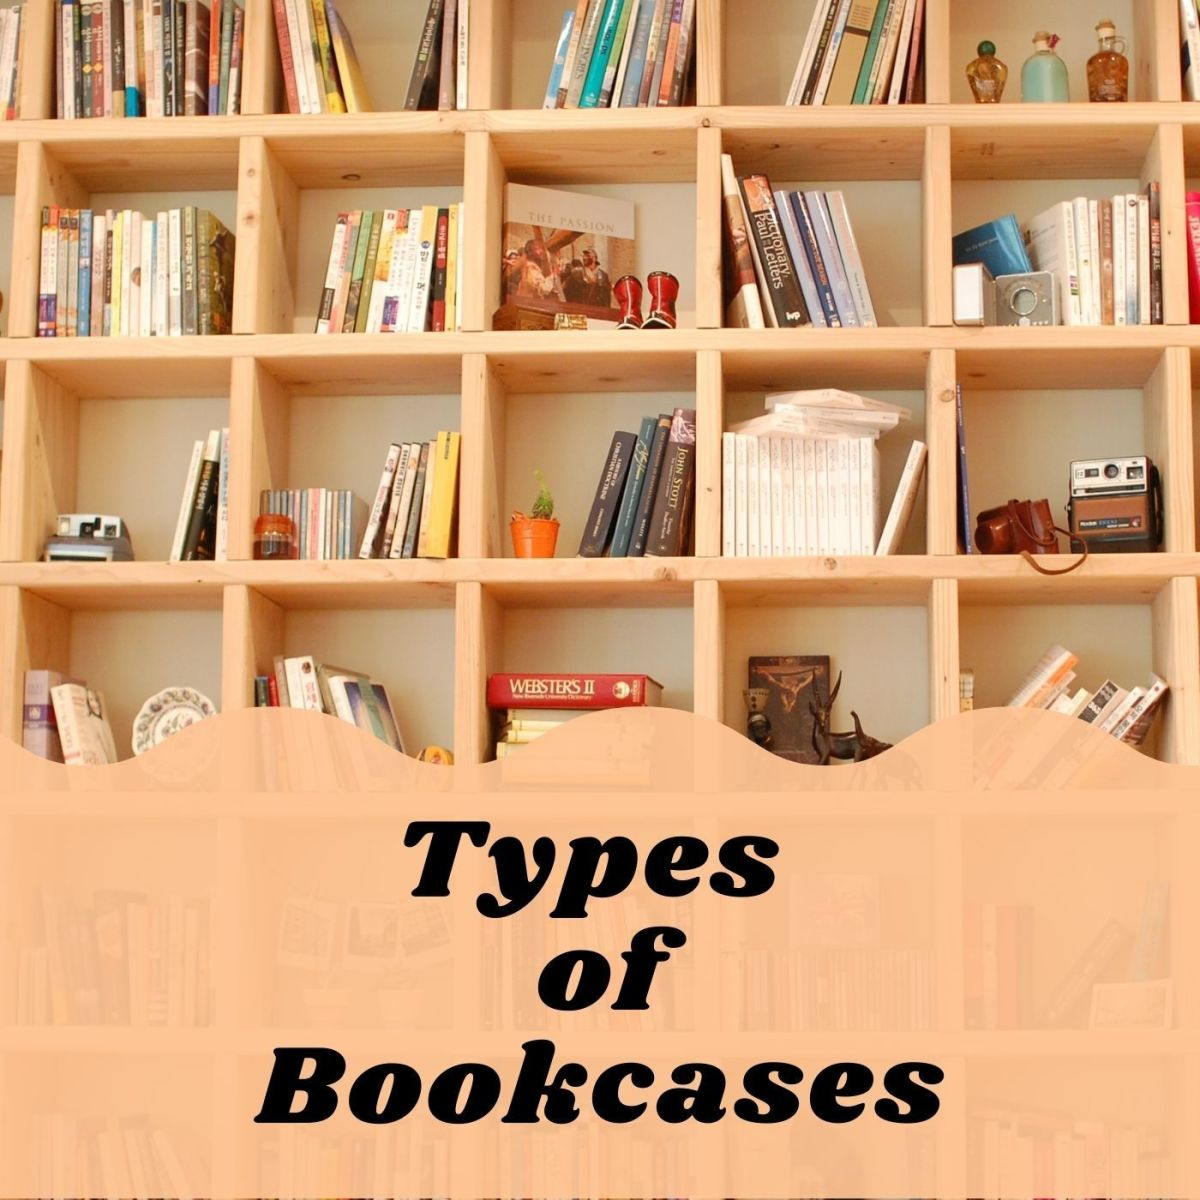 There are so many different styles of bookcases!